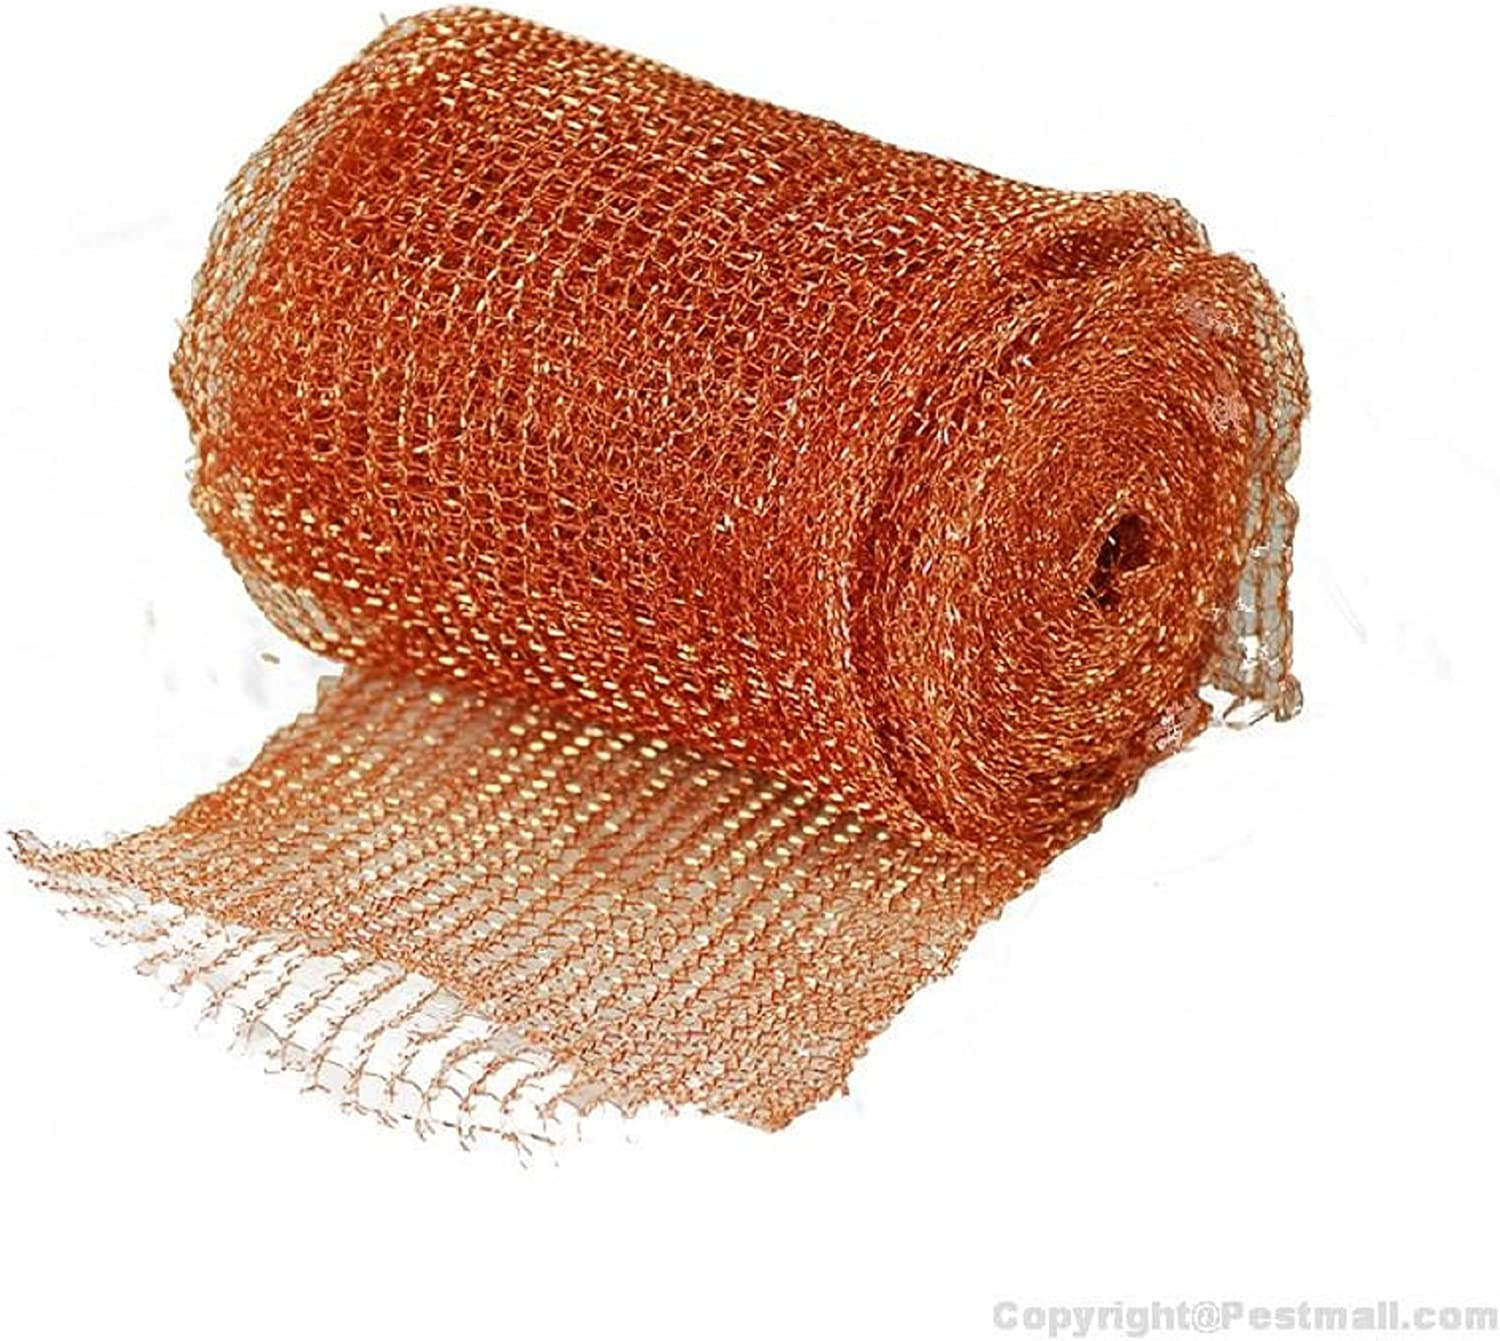 Stuff-fit Copper Mesh for Mouse Rat Rodent Control as Well as Bat Snell Control 30 Foot Roll, Full Size